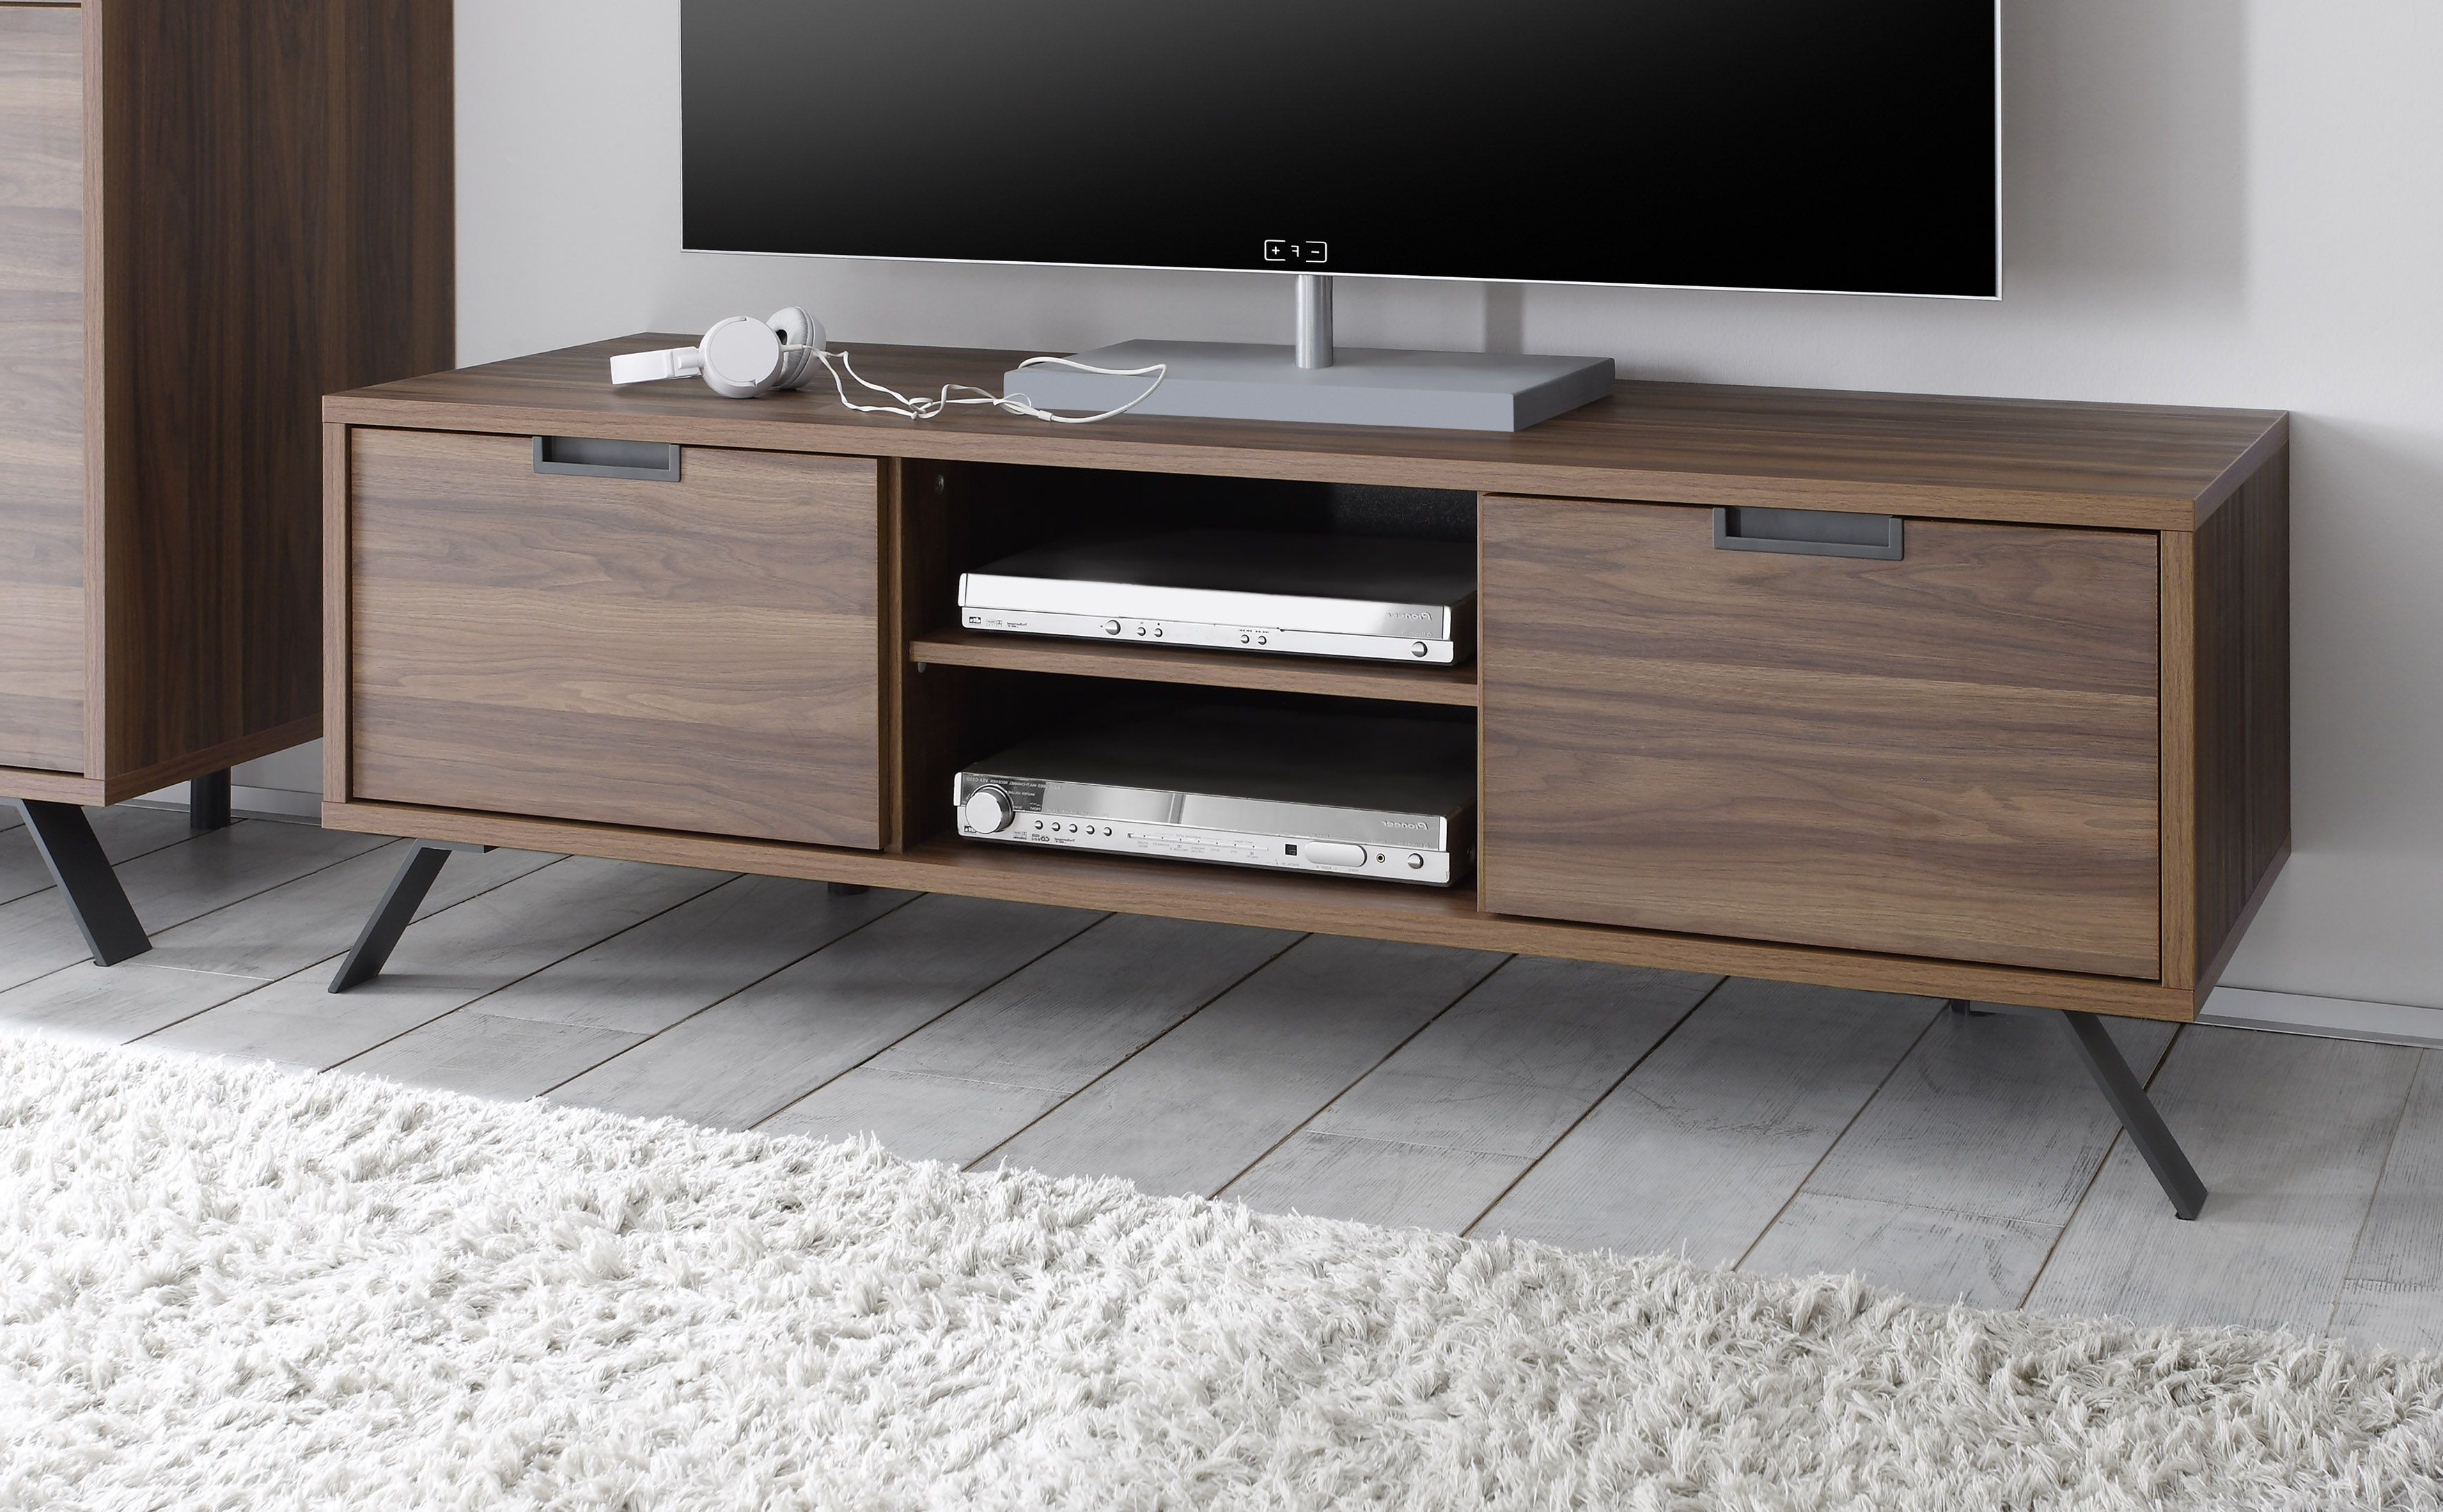 Why Should One Buy Walnut Tv Stand? – Furnish Ideas With Regard To Well Known Walnut Tv Stands (View 20 of 20)